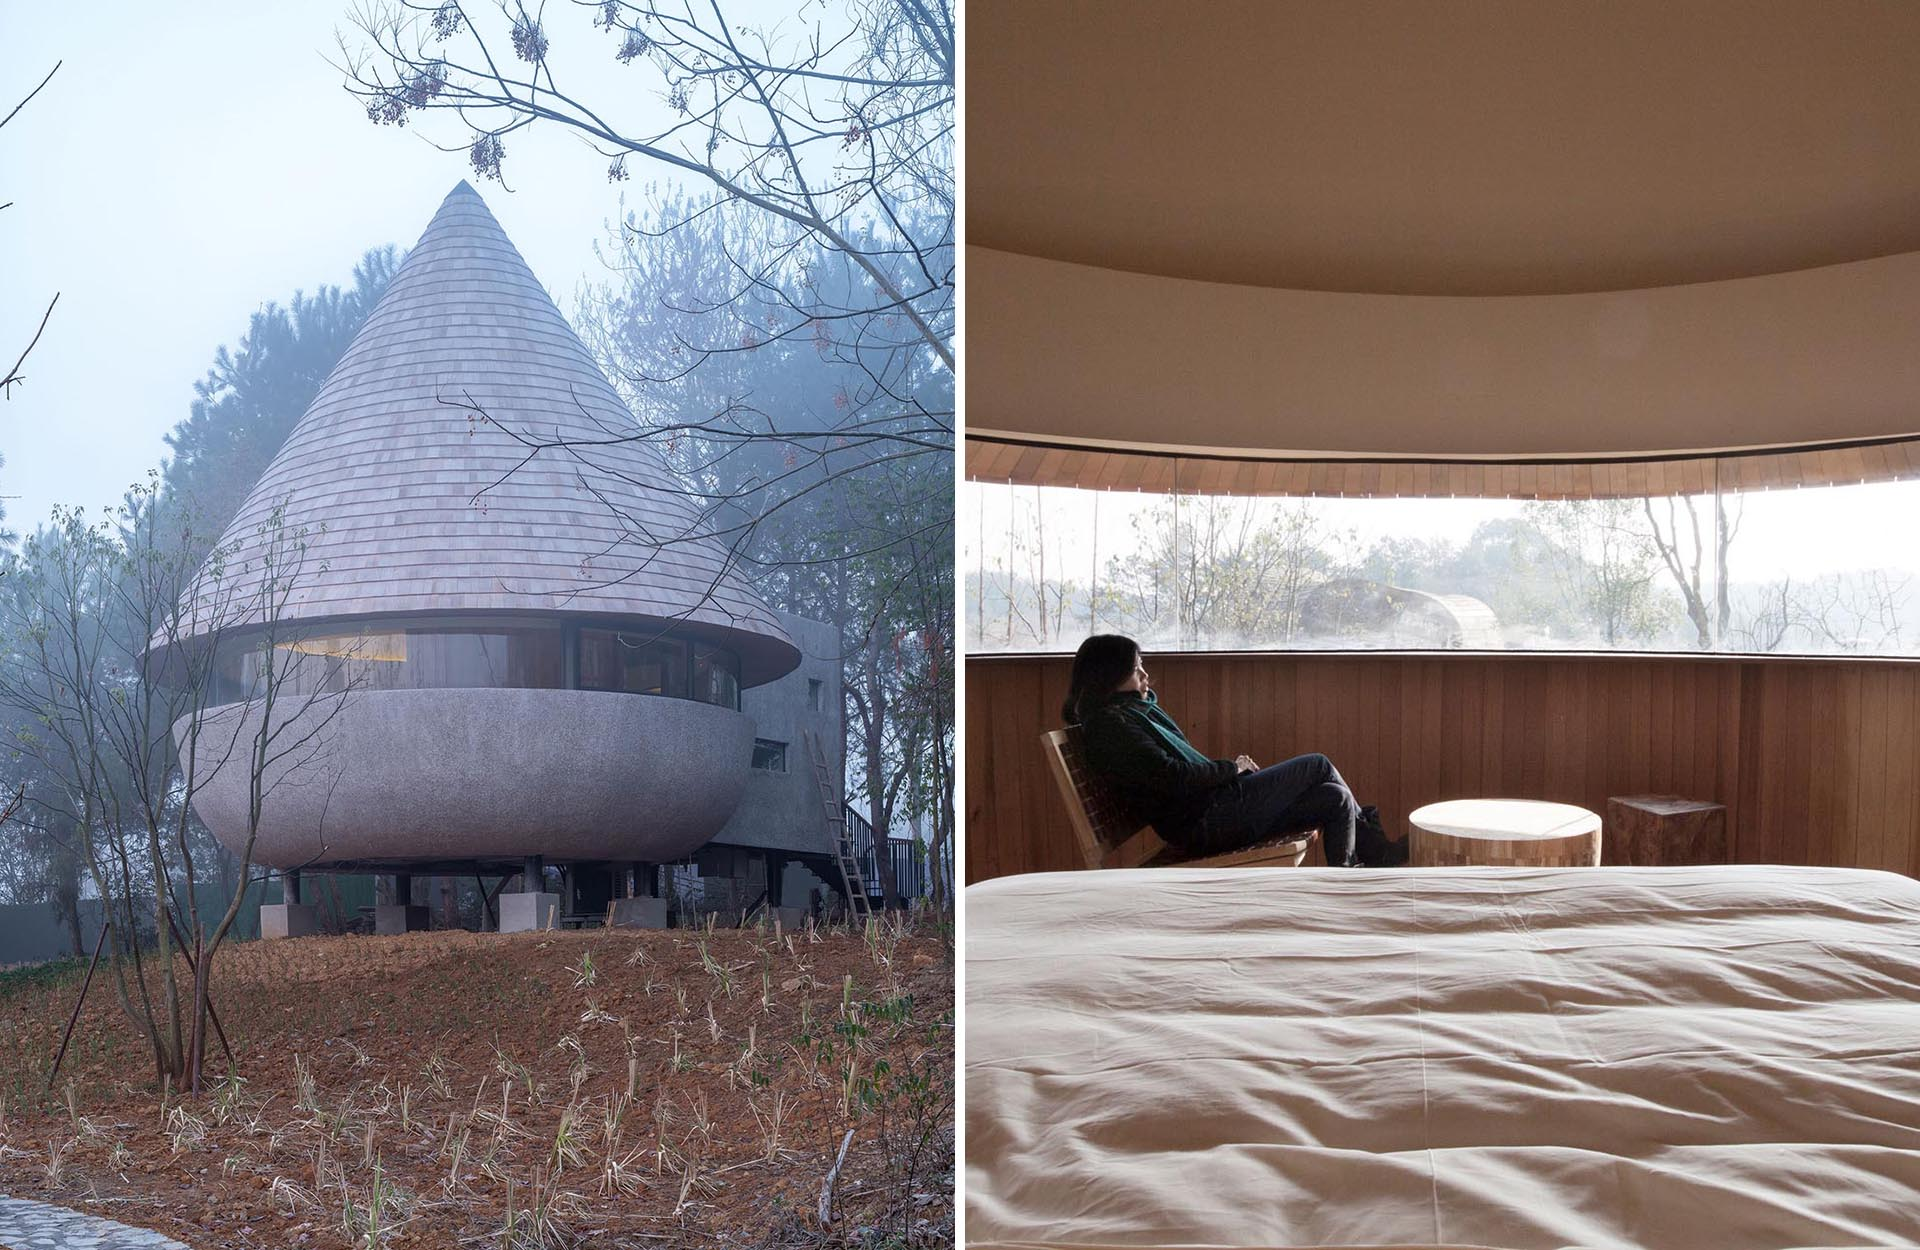 A modern cabin with a cone-shaped shingle clad roof.